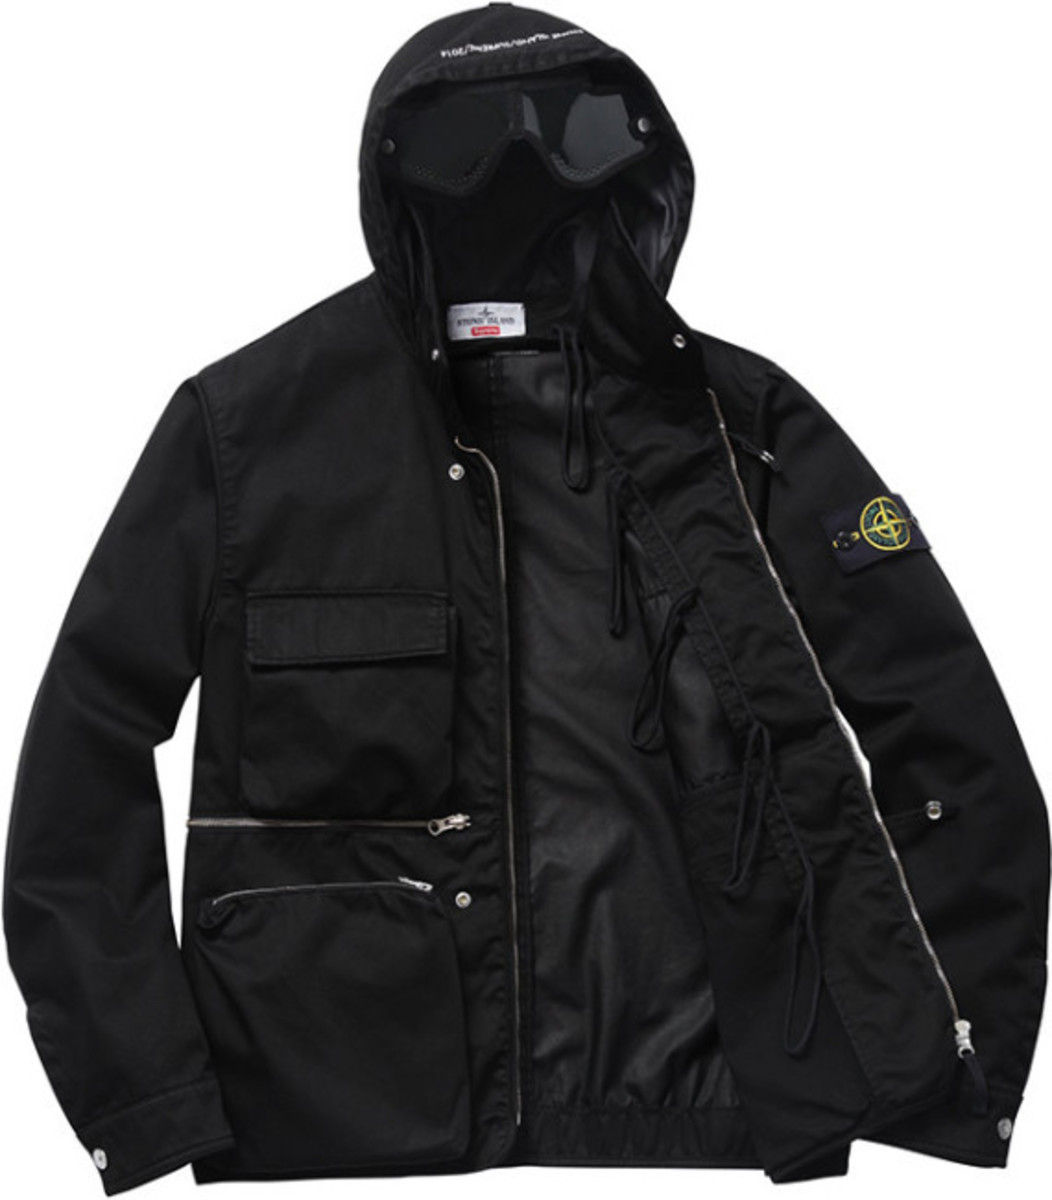 Supreme x Stone Island – Fall/Winter 2014 Collection | Available Now - 21